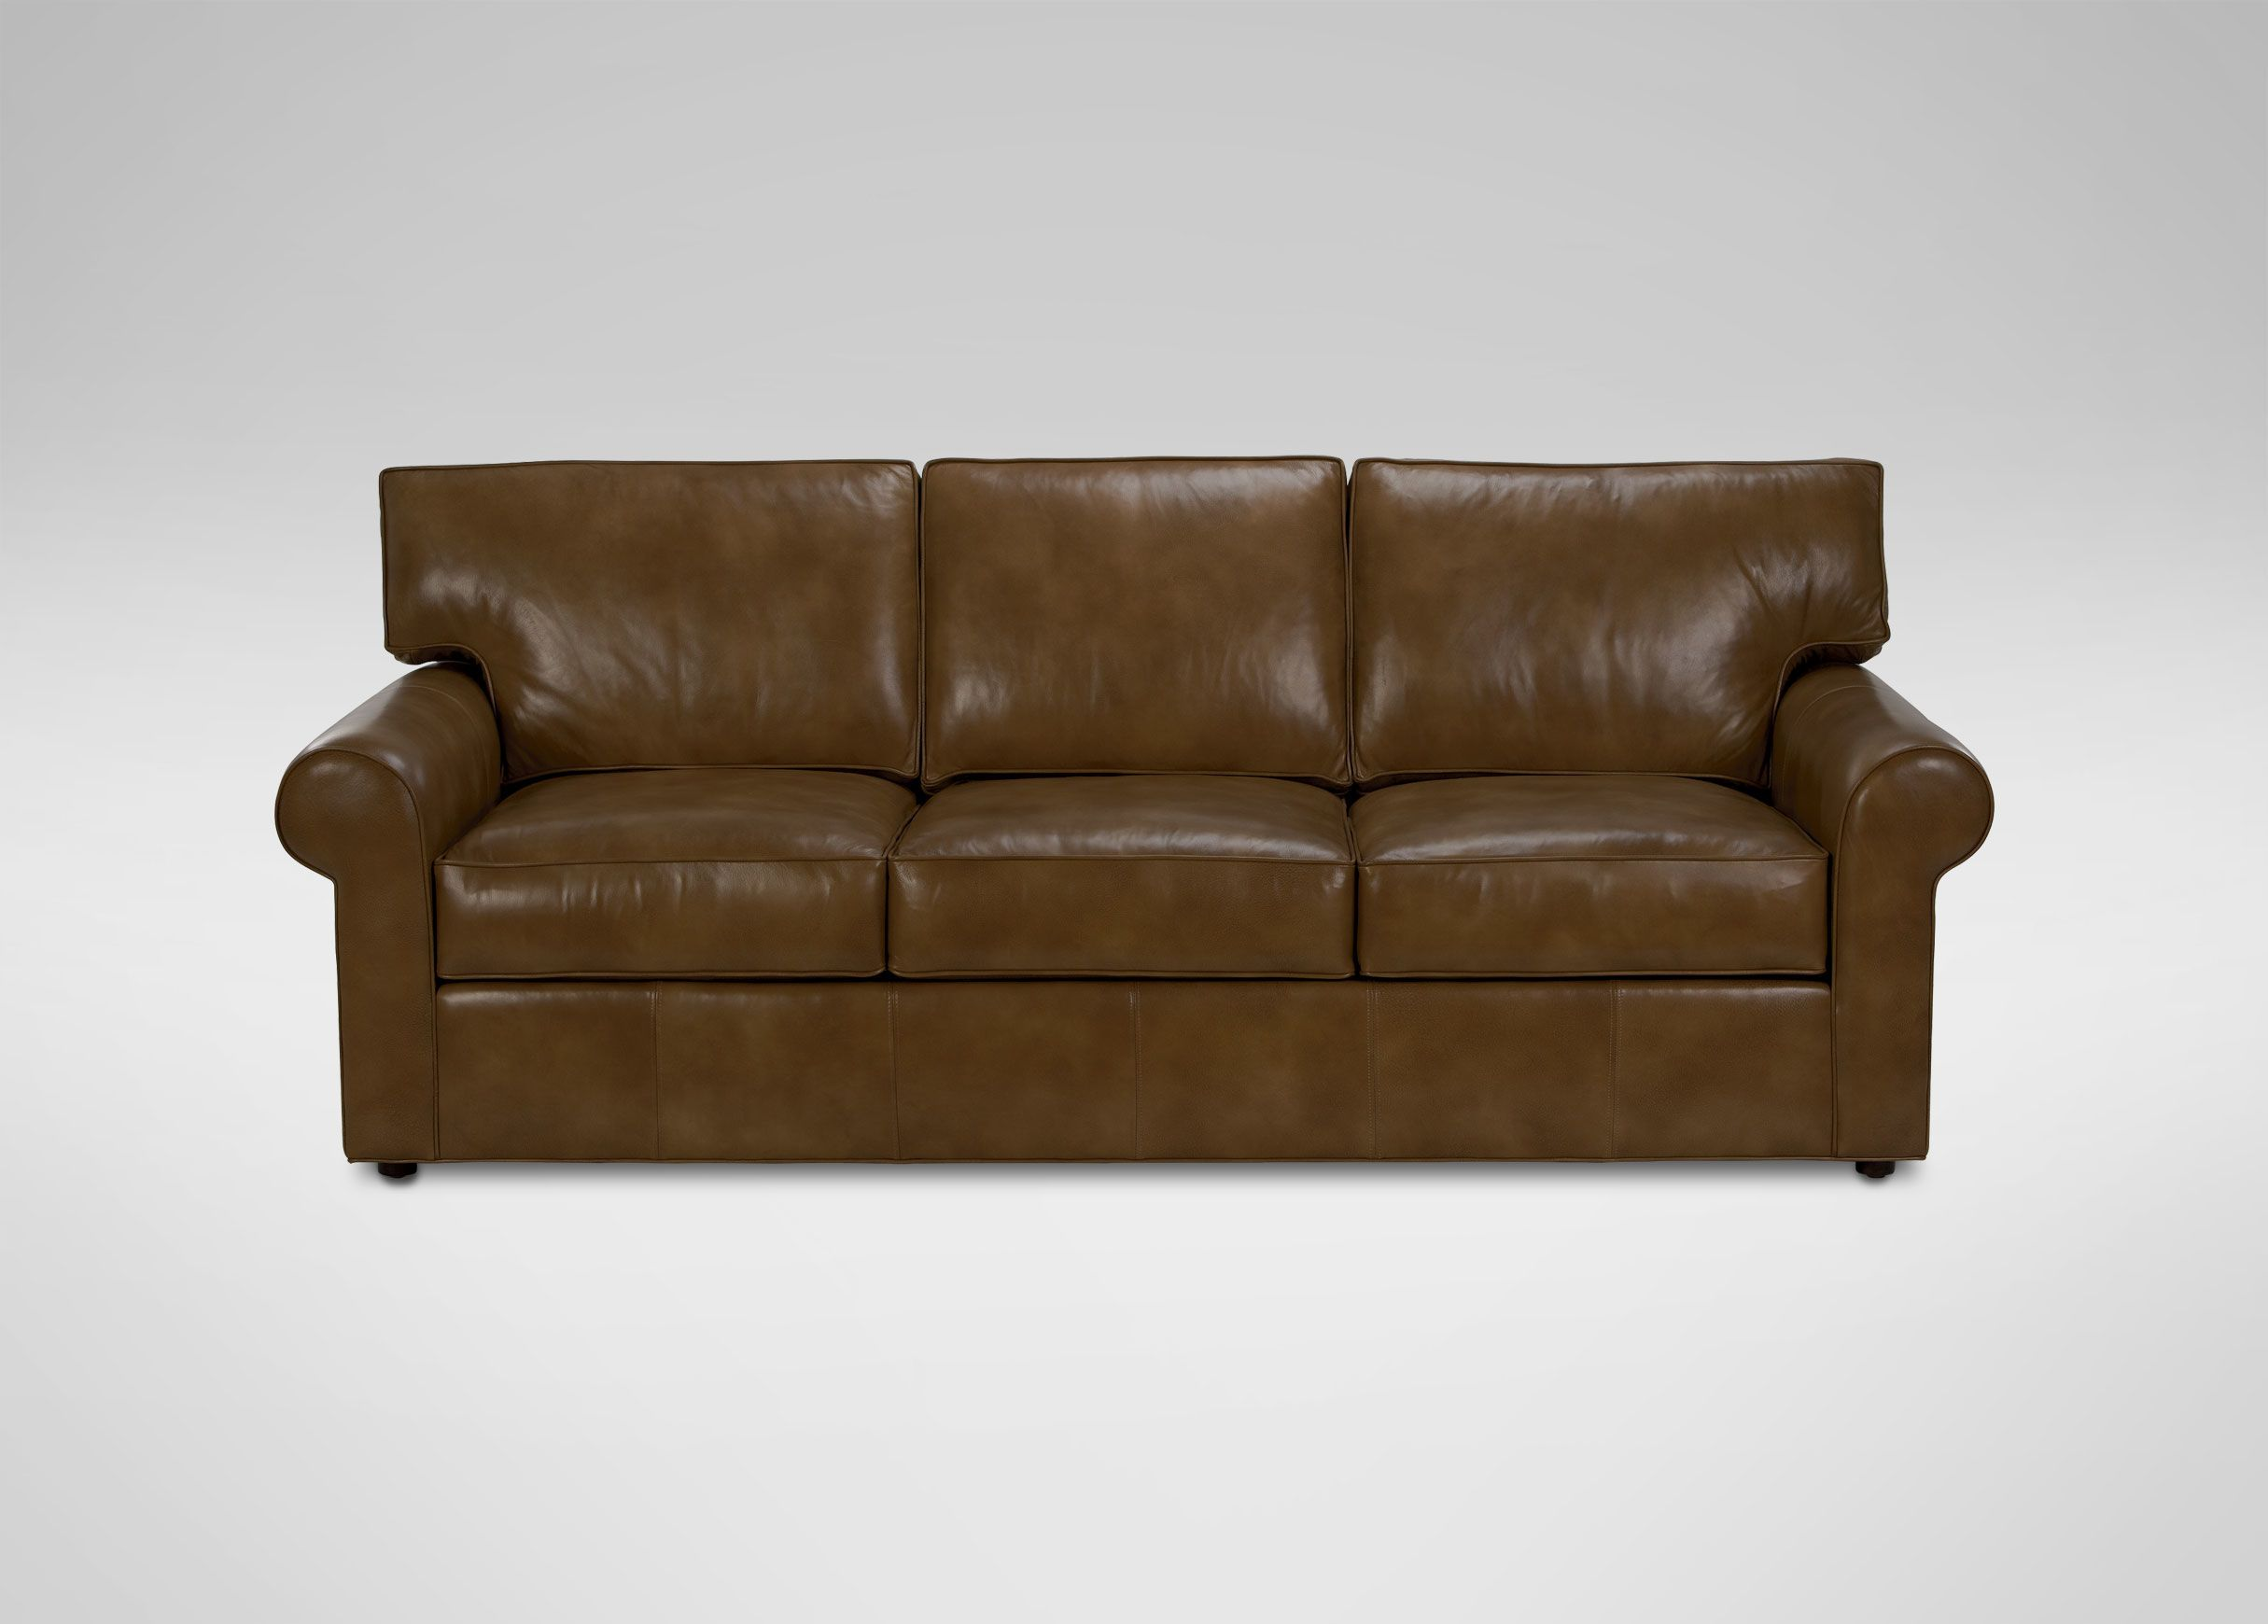 Retreat Also Available As A Loveseat 2 Diffe Sofa Lengths Chair Ottoman